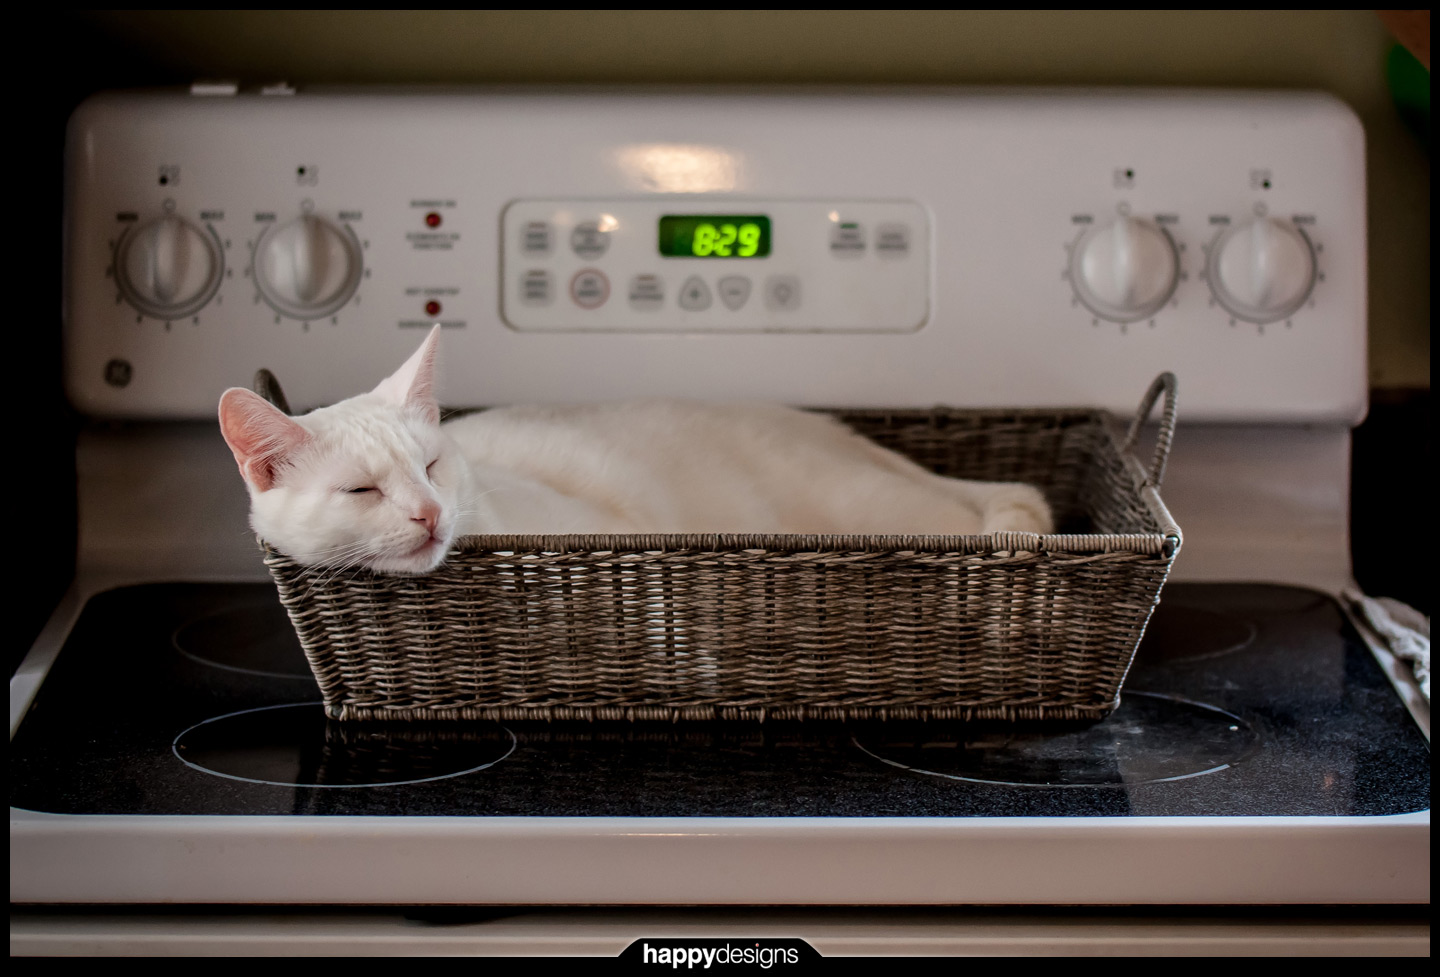 20140107 - Dasher on the oven basket-0001